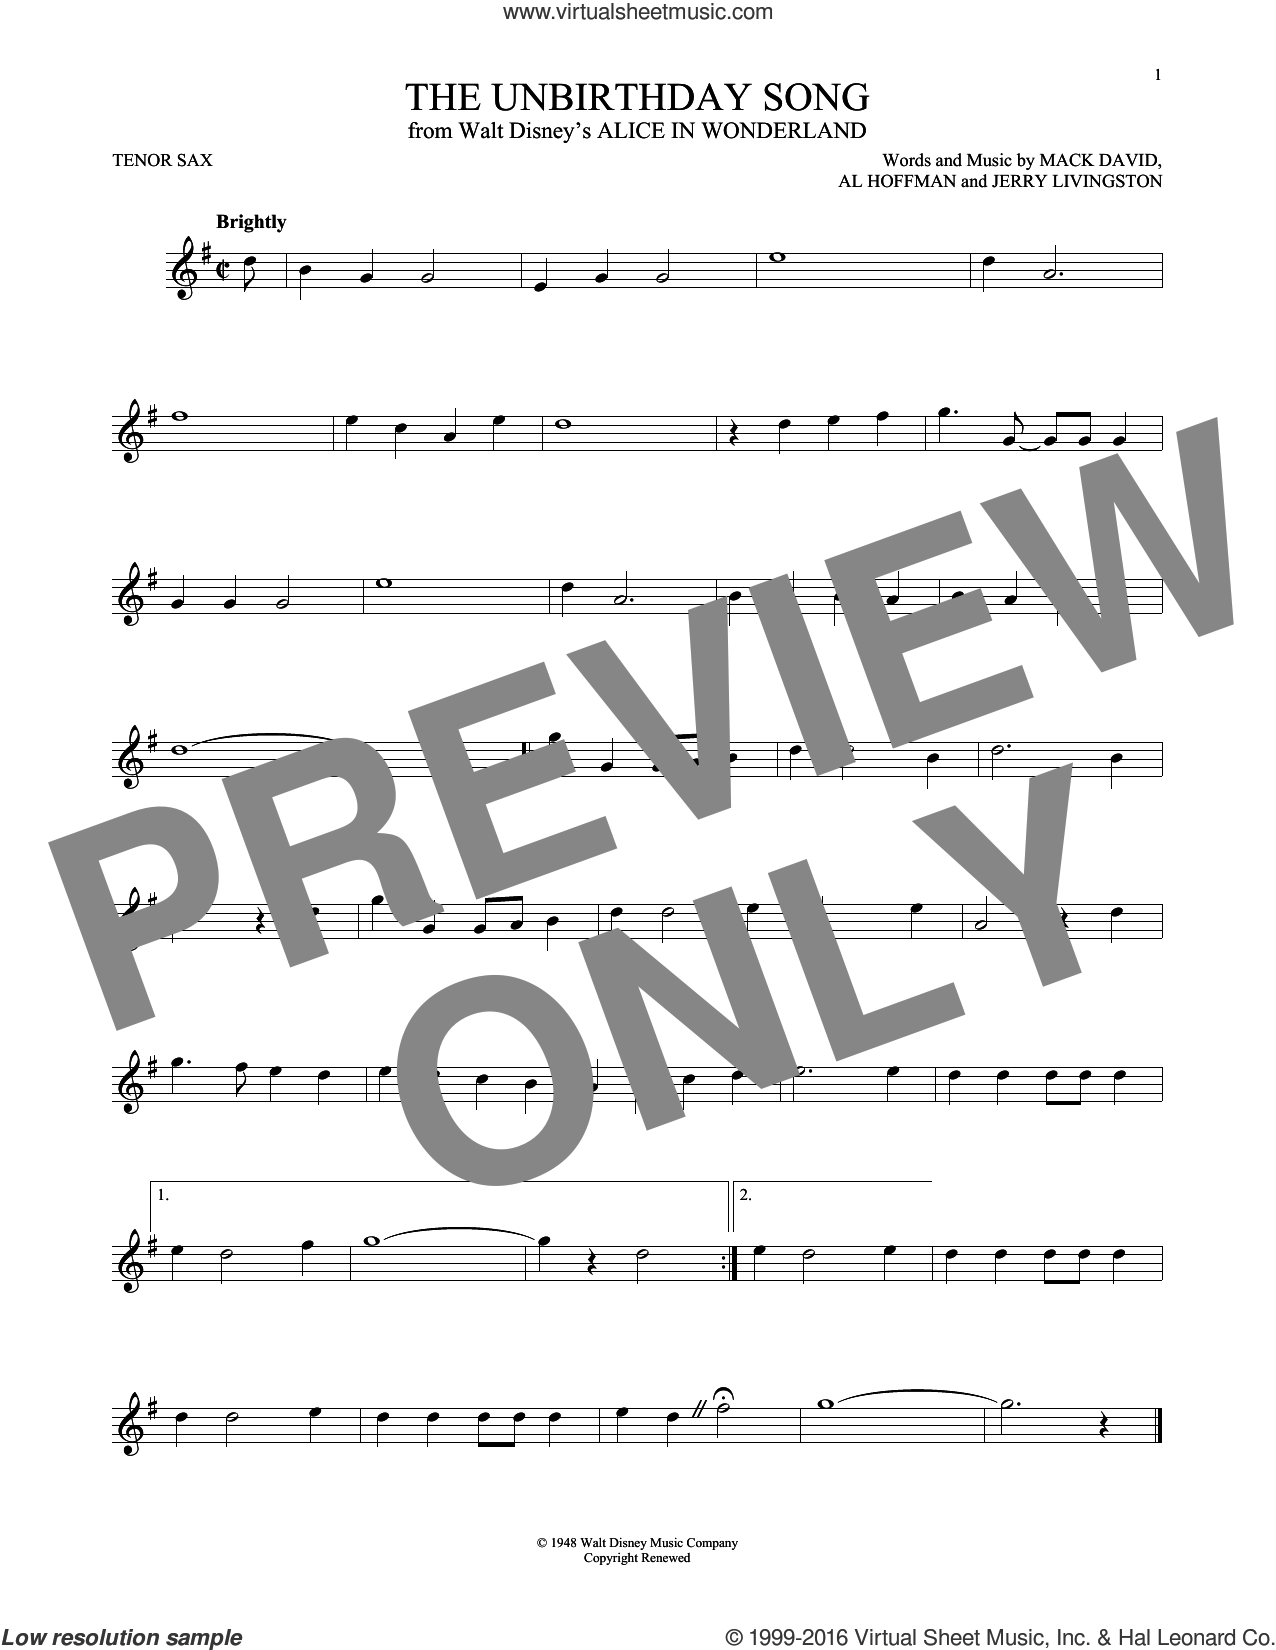 The Unbirthday Song sheet music for tenor saxophone solo by Al Hoffman, Jerry Livingston, Mack David and Mack David, Al Hoffman and Jerry Livingston, intermediate skill level